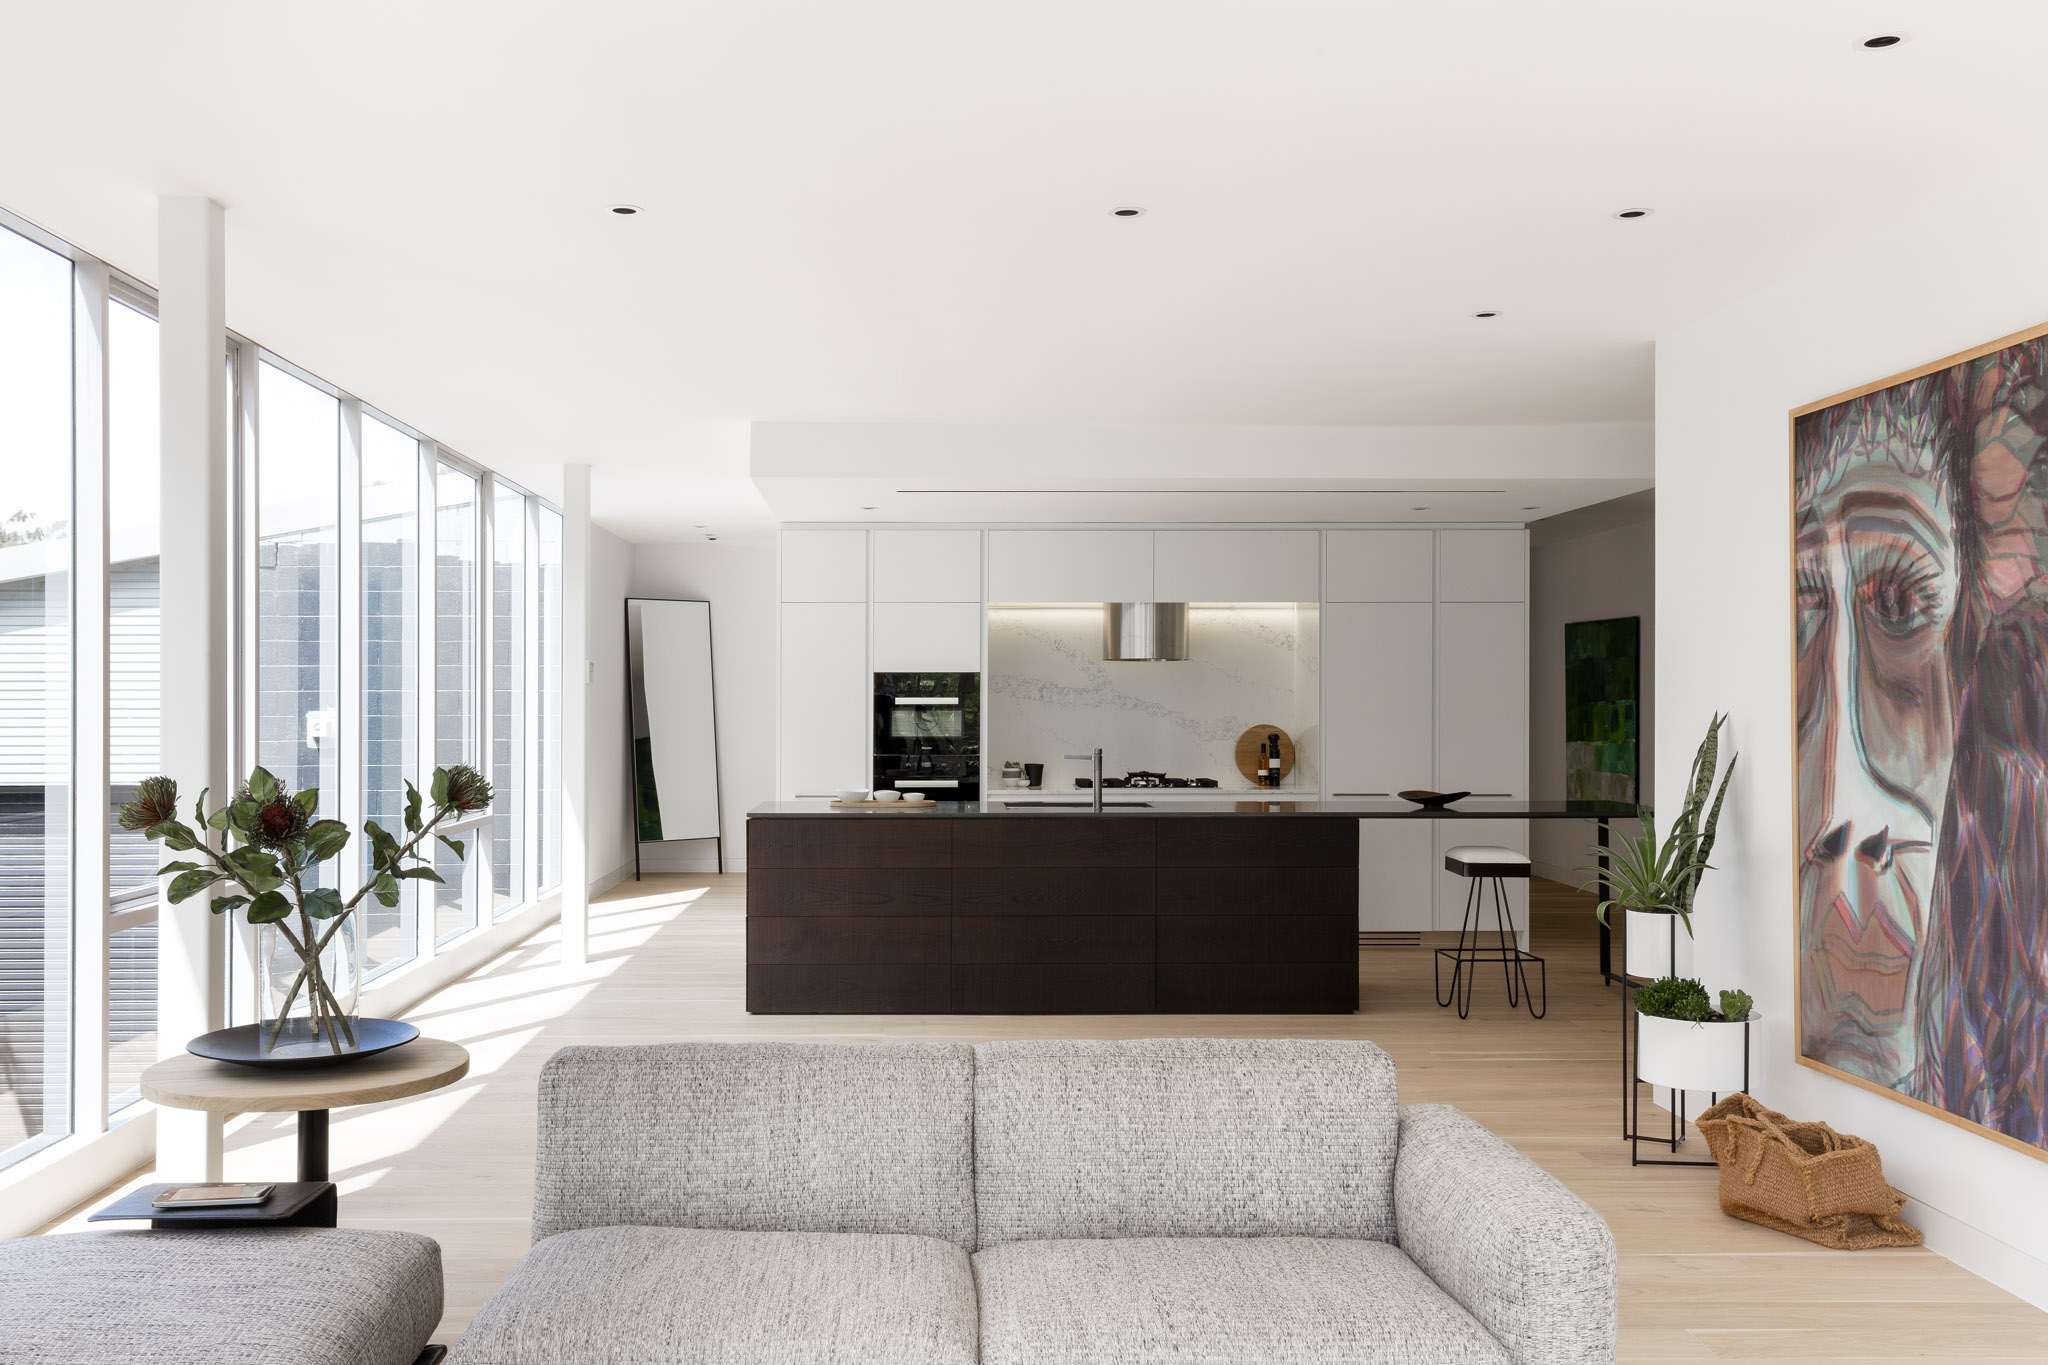 Buckland St Display Suite for Rogerseller